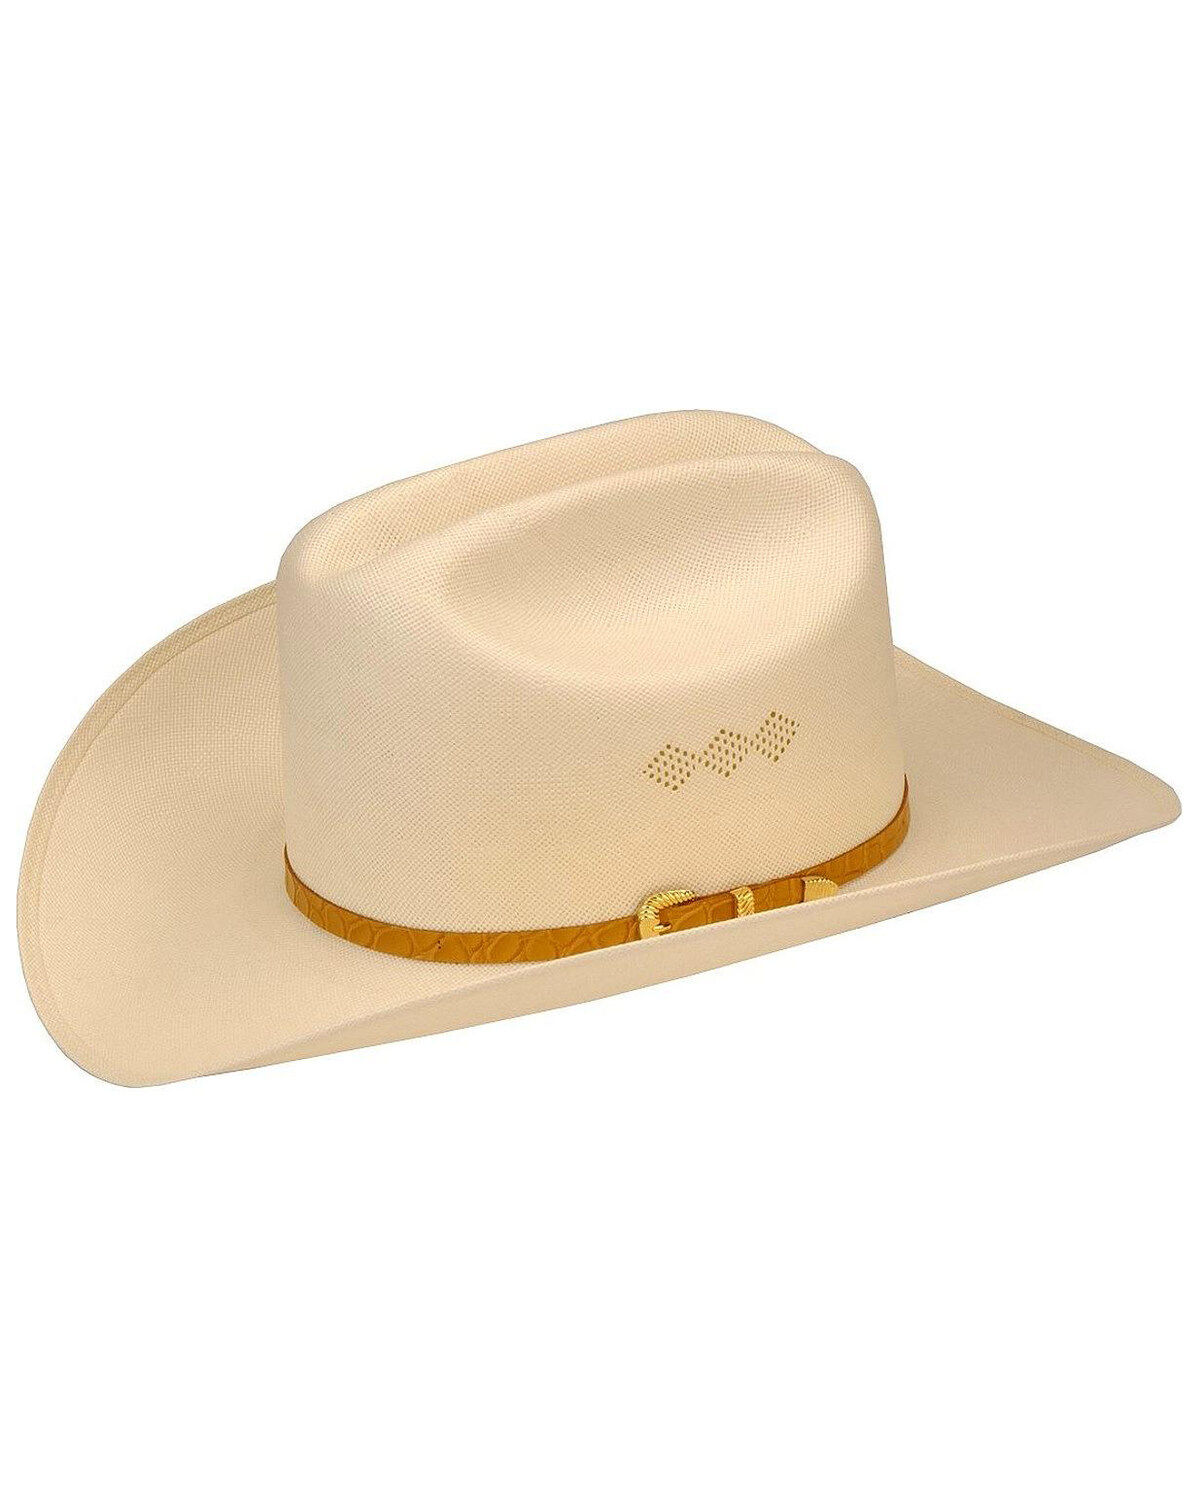 fe1cc5adfd9 Men s Straw Western Hats